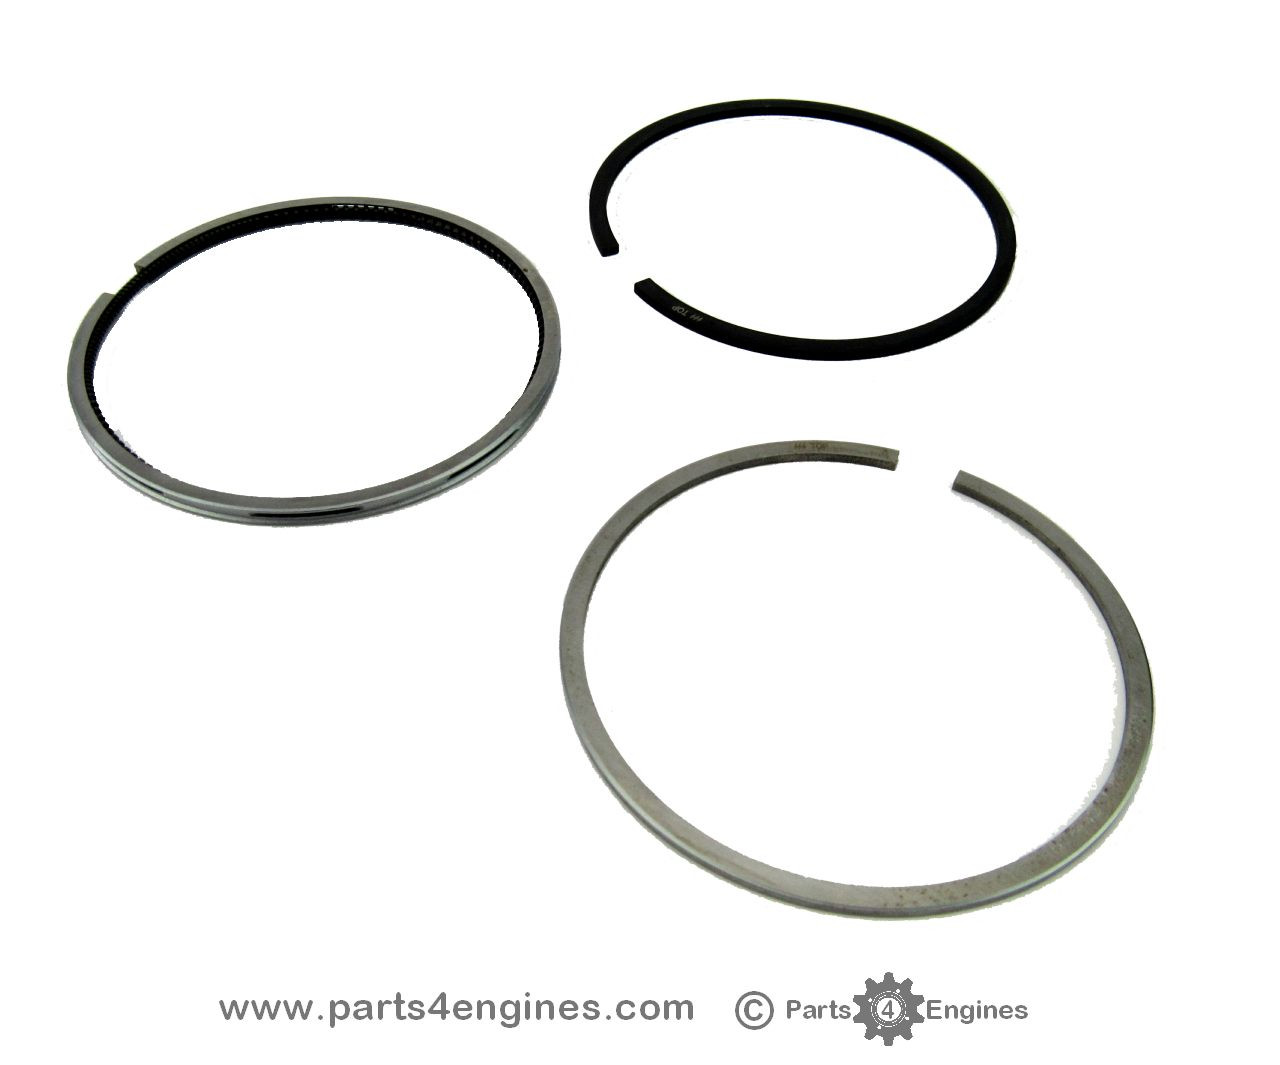 Volvo Penta 2002 Piston Ring set, from parts4engines.com